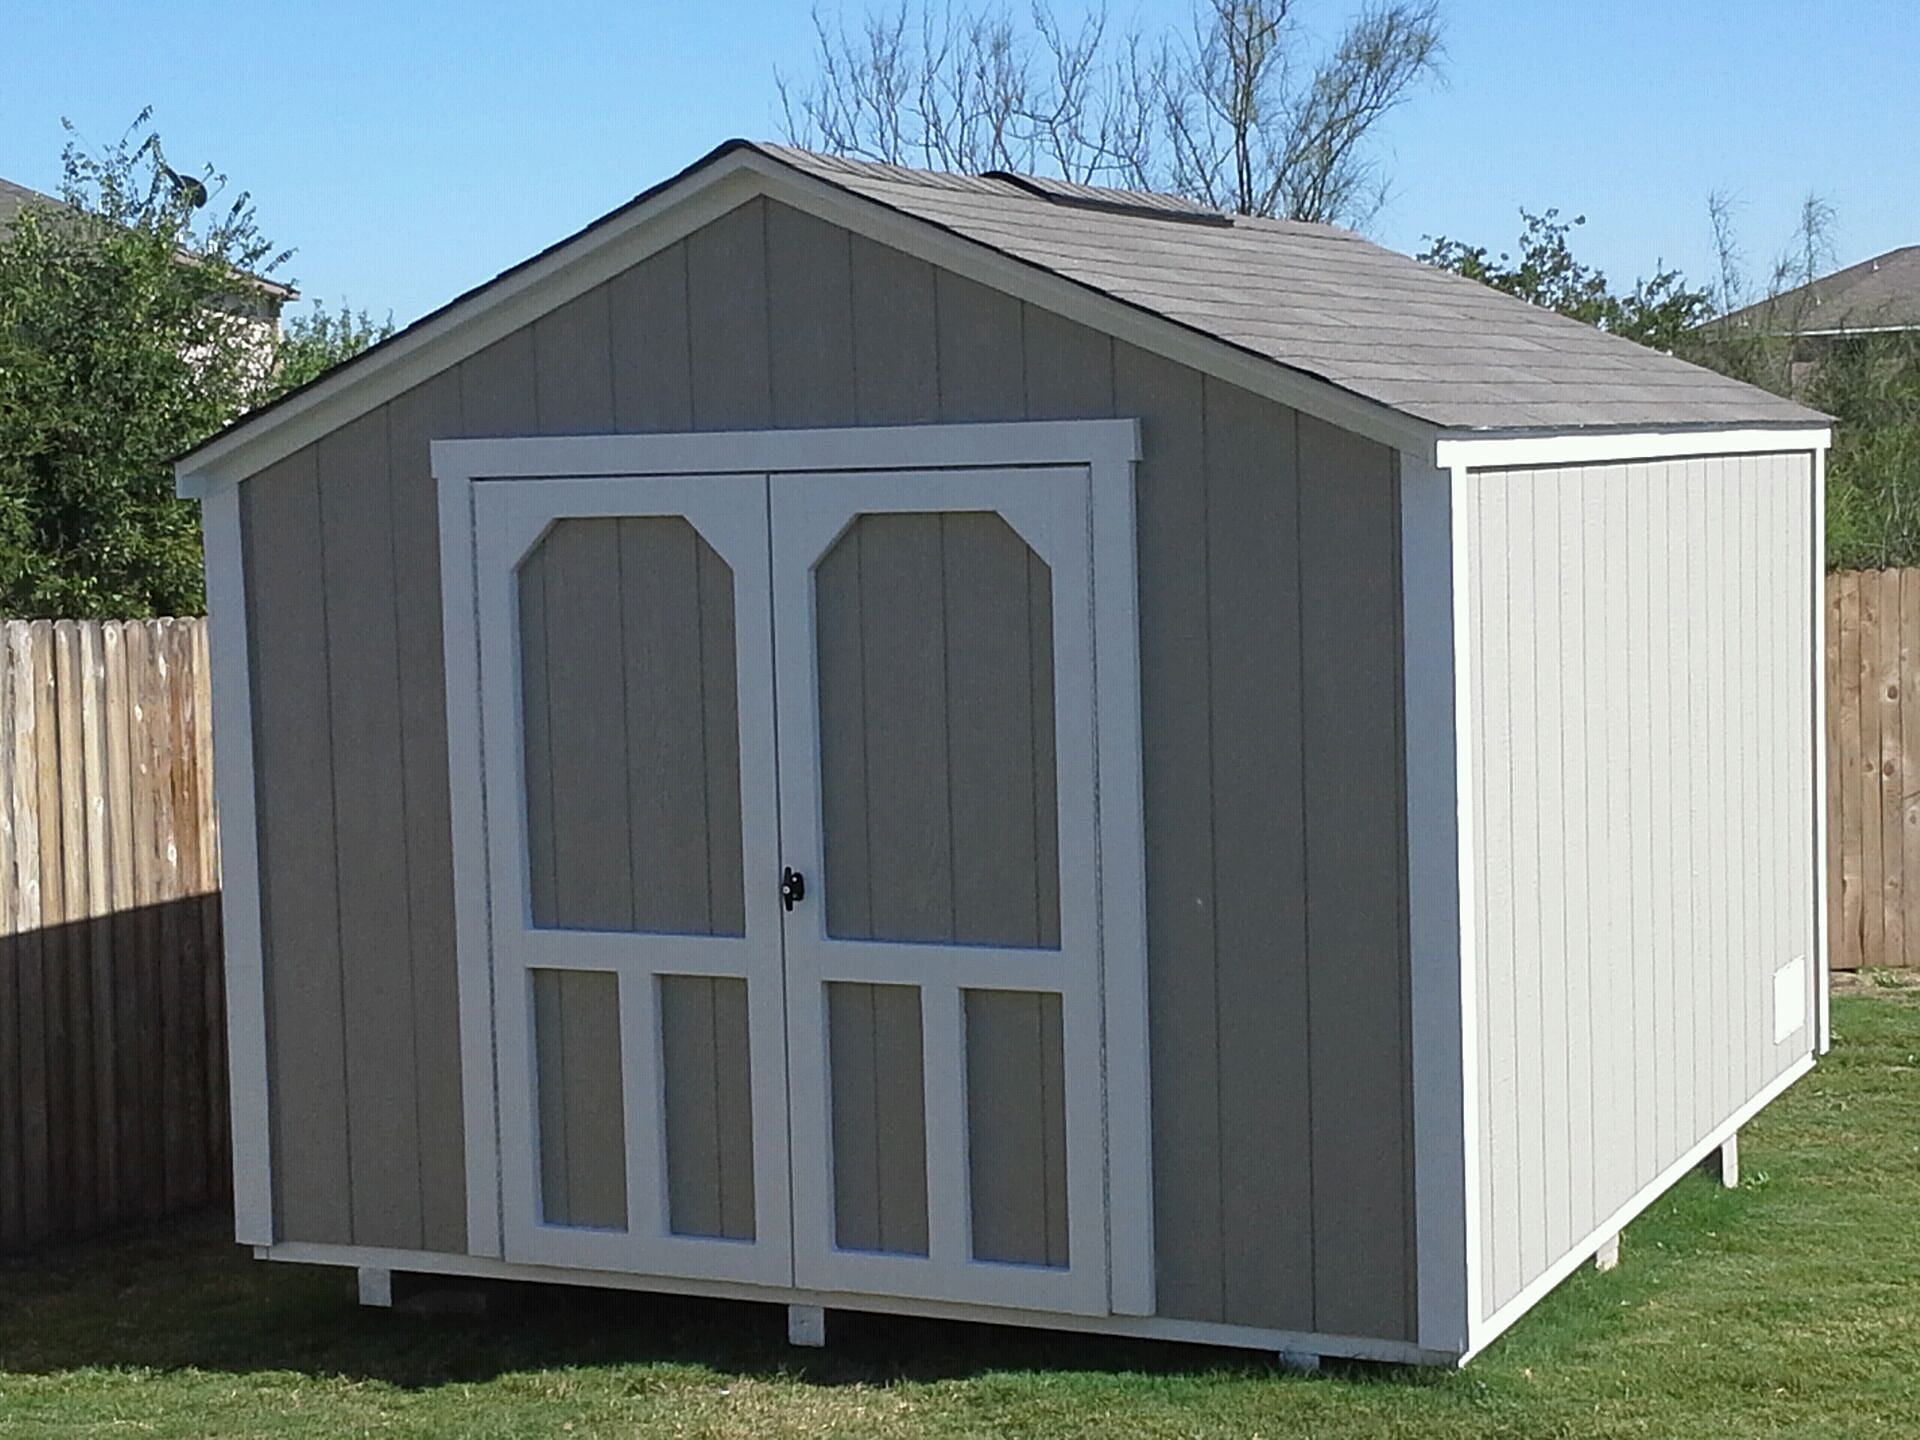 Backyard barns custom wood storage sheds san antonio for Gable style shed